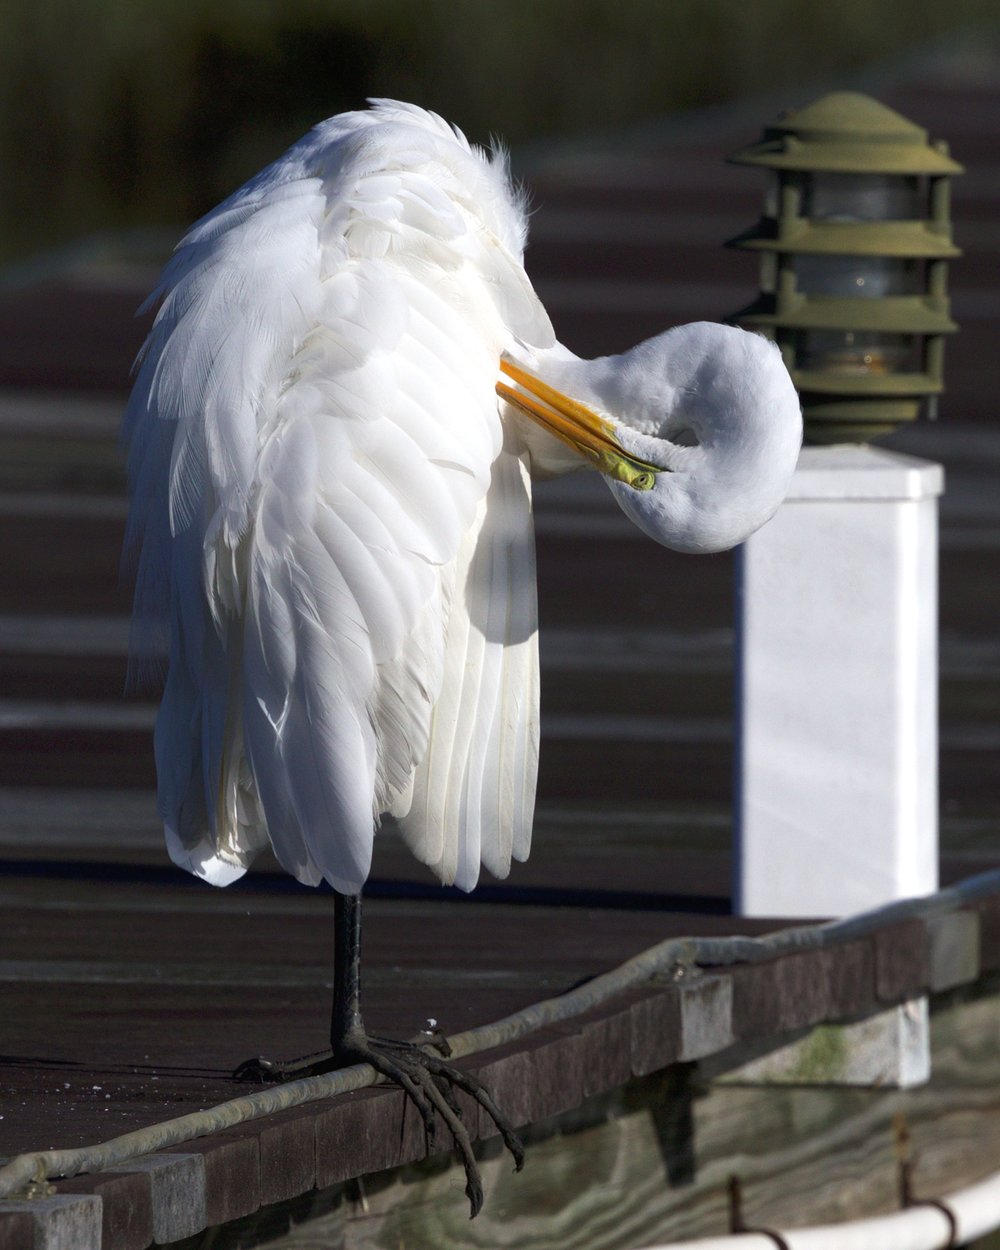 The Great Egret hops up on the dock and also begins to preen.